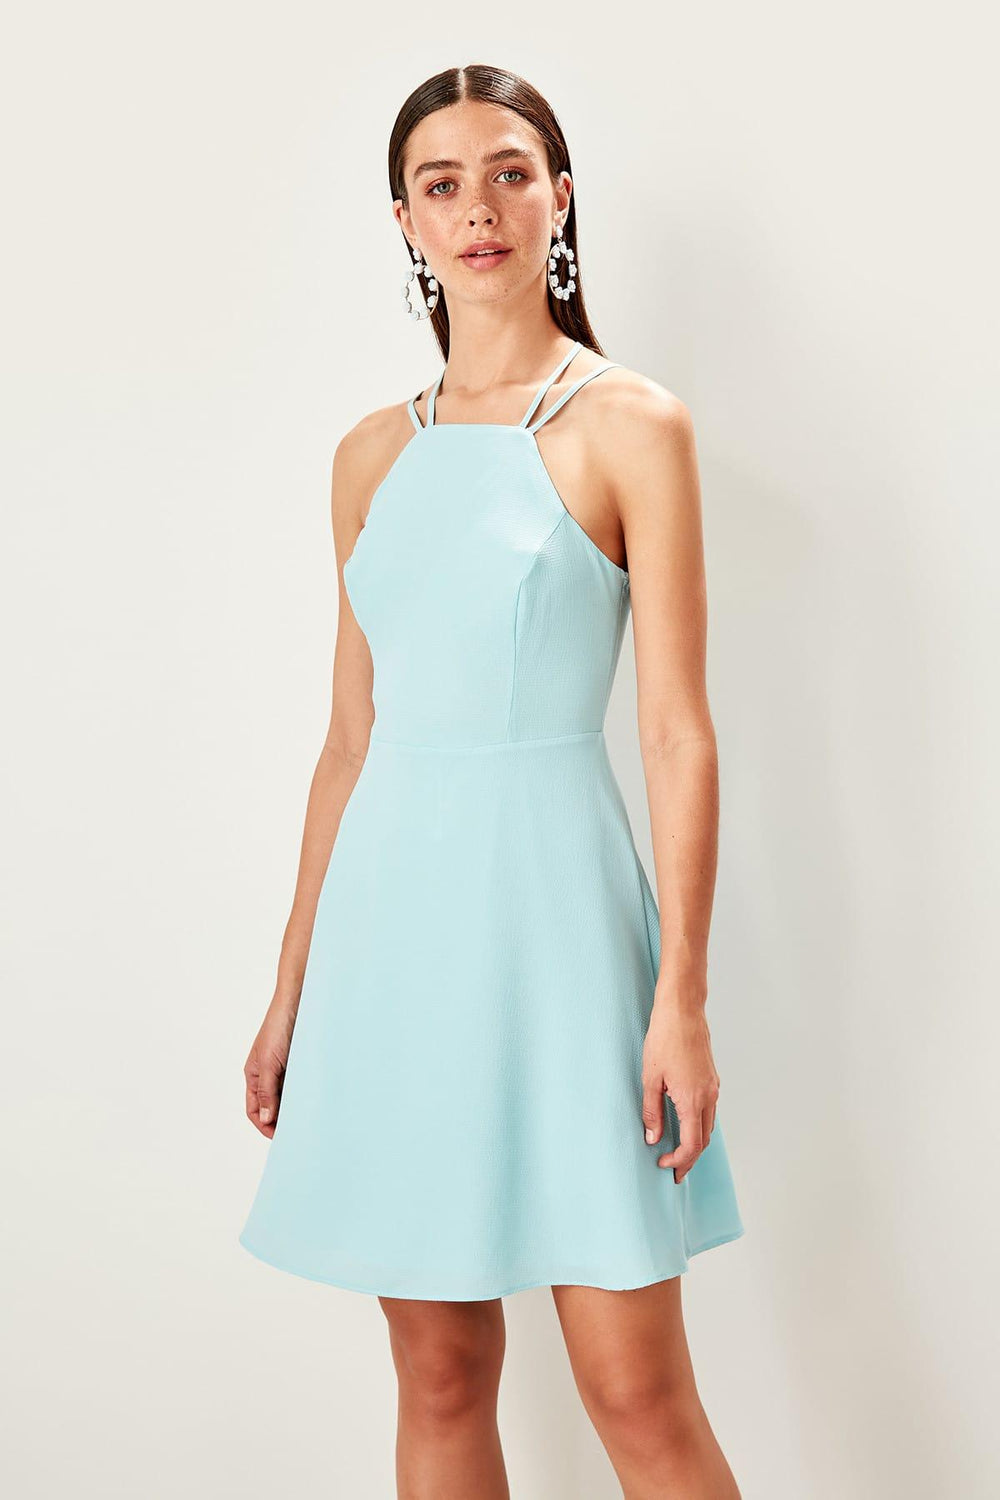 Blue Halter-neck Dress - Top Maxy